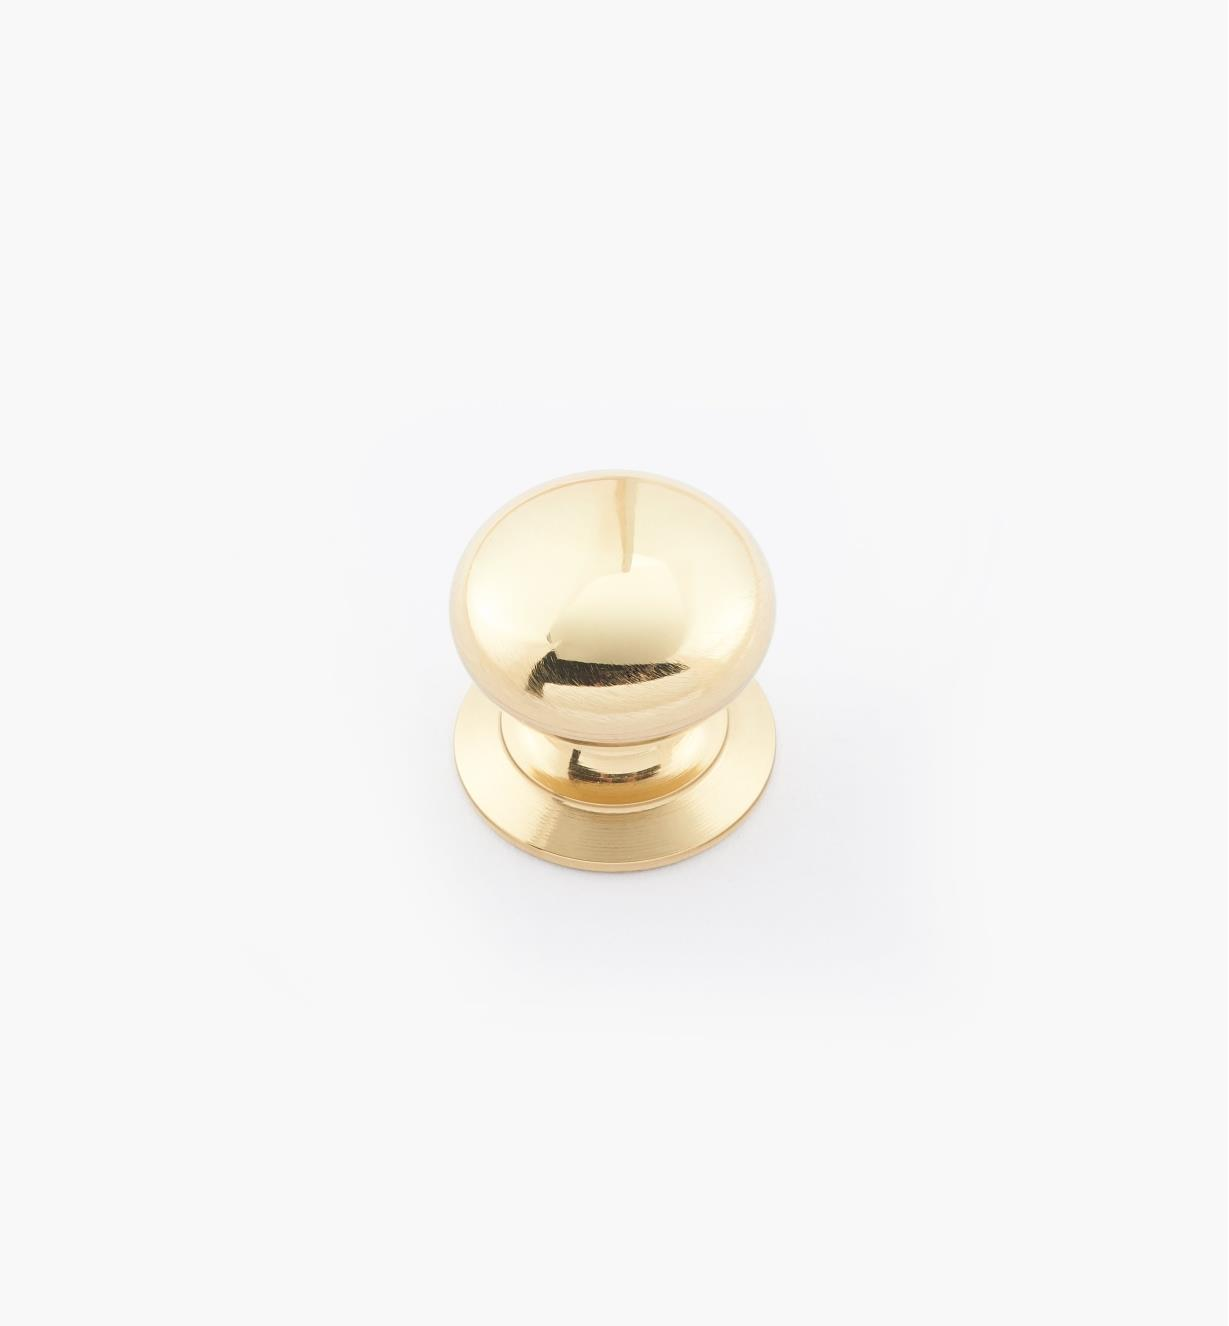 "02W2706 - 5/8"" × 5/8"" Round Brass Knob, Polished Brass"